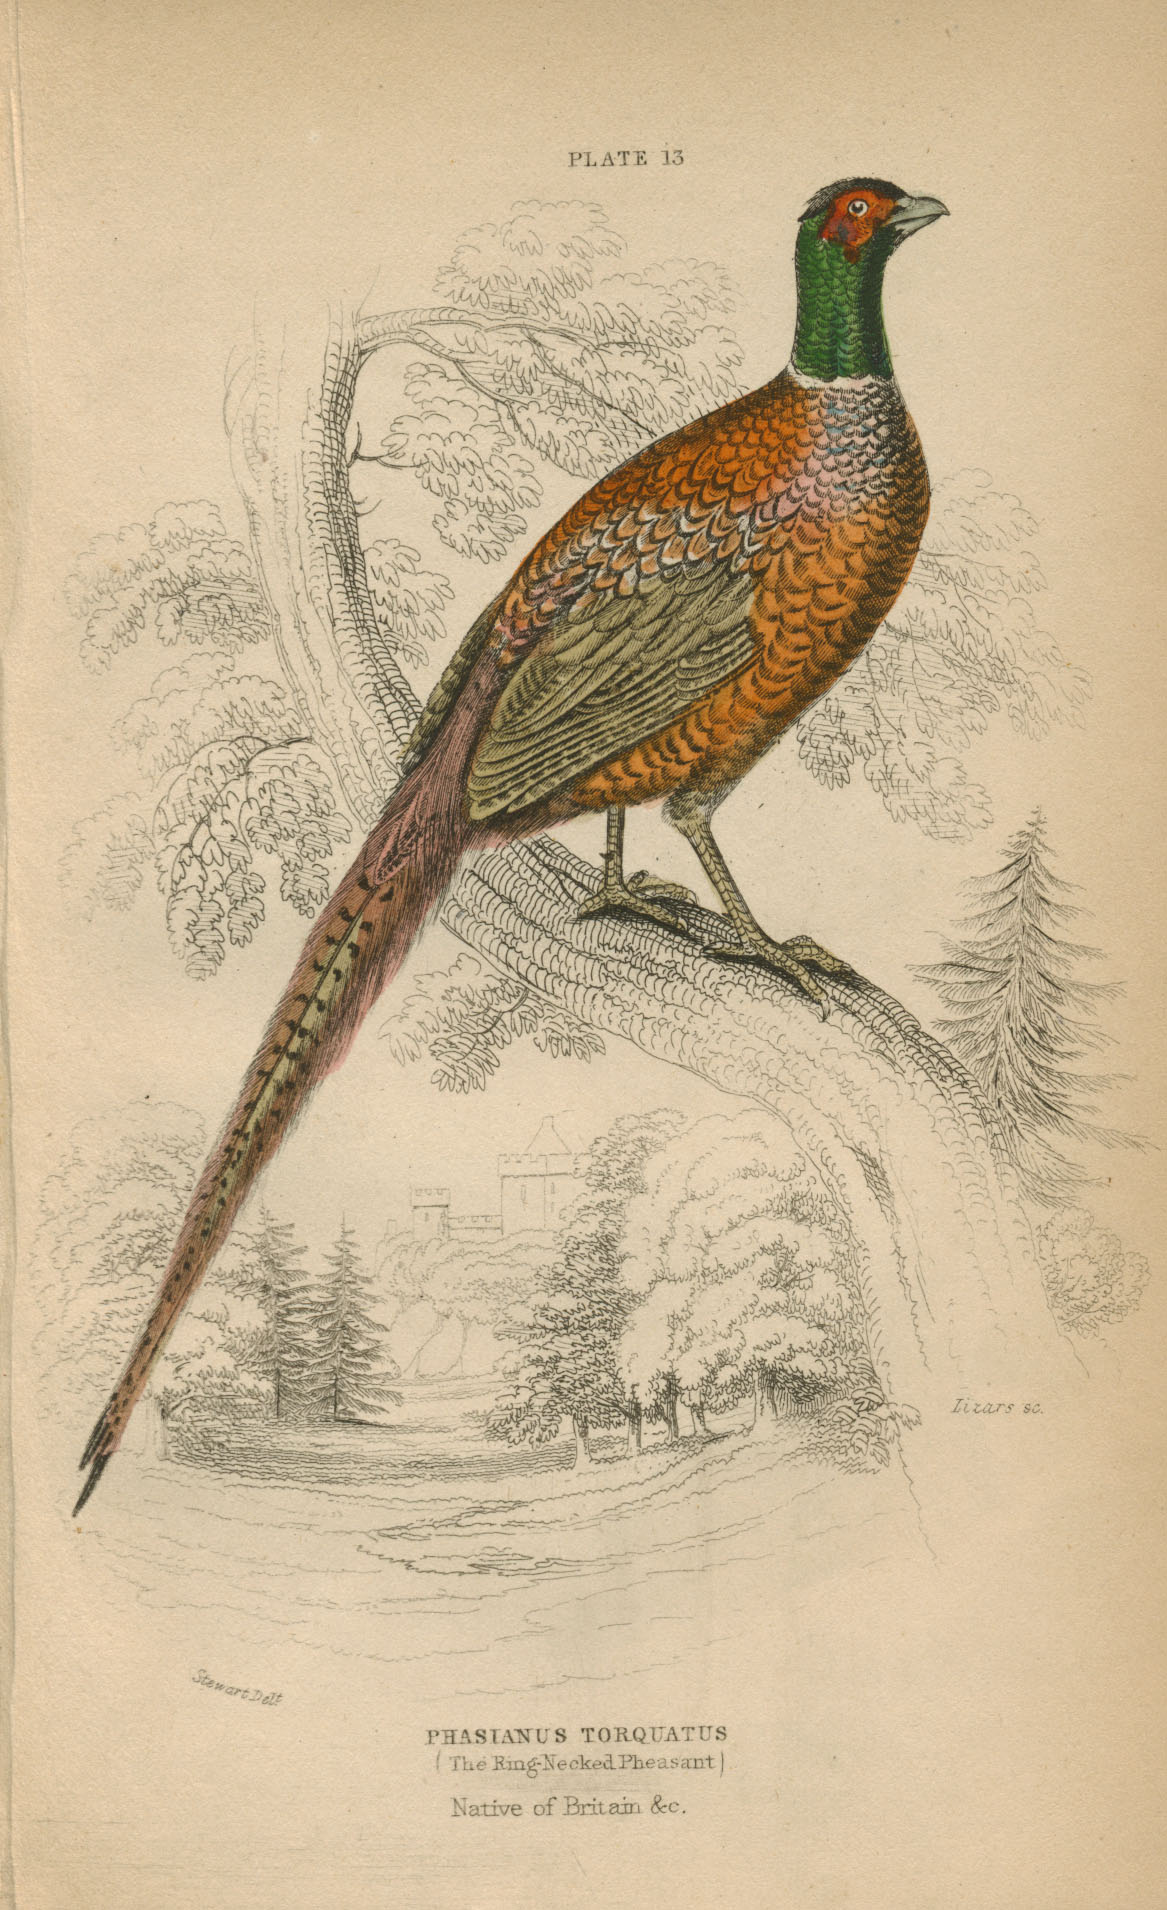 Phasianus Torquatus (Ring-necked Pheasant), Native of Britain. Lizars engraving c1835